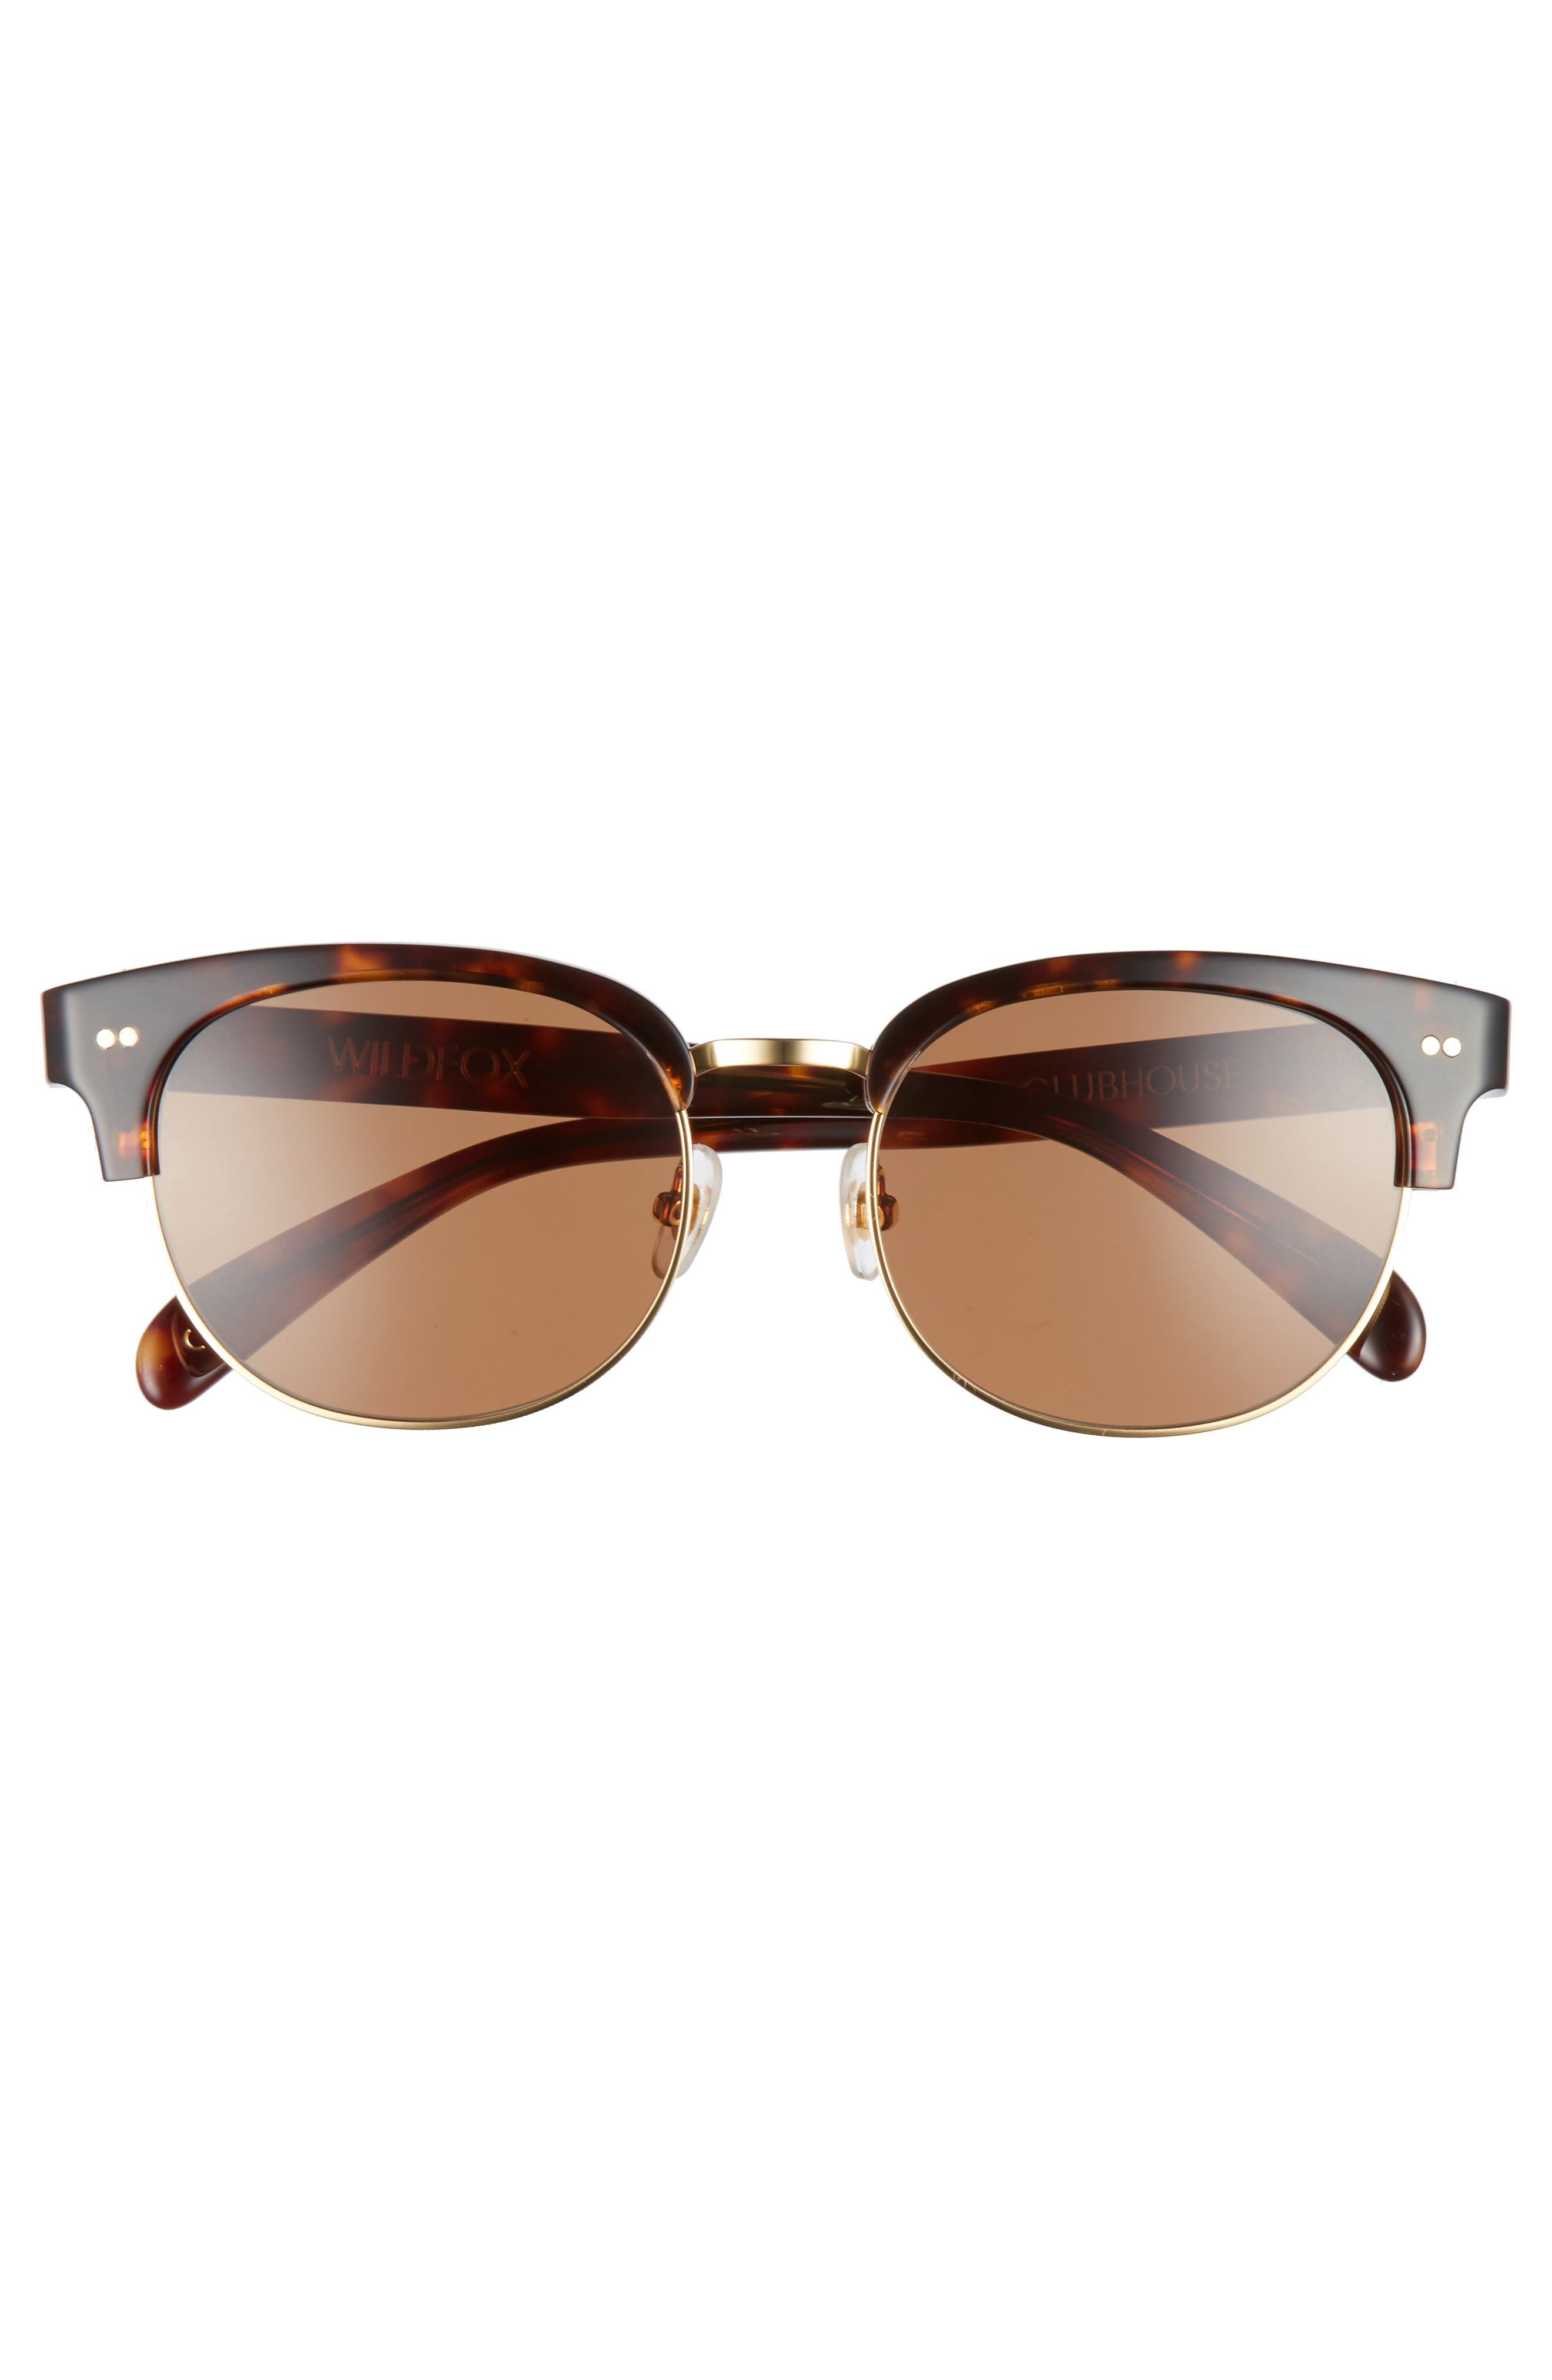 Clubhouse 50mm Semi-Rimless Sunglasses,                             Alternate thumbnail 3, color,                             Tortoise